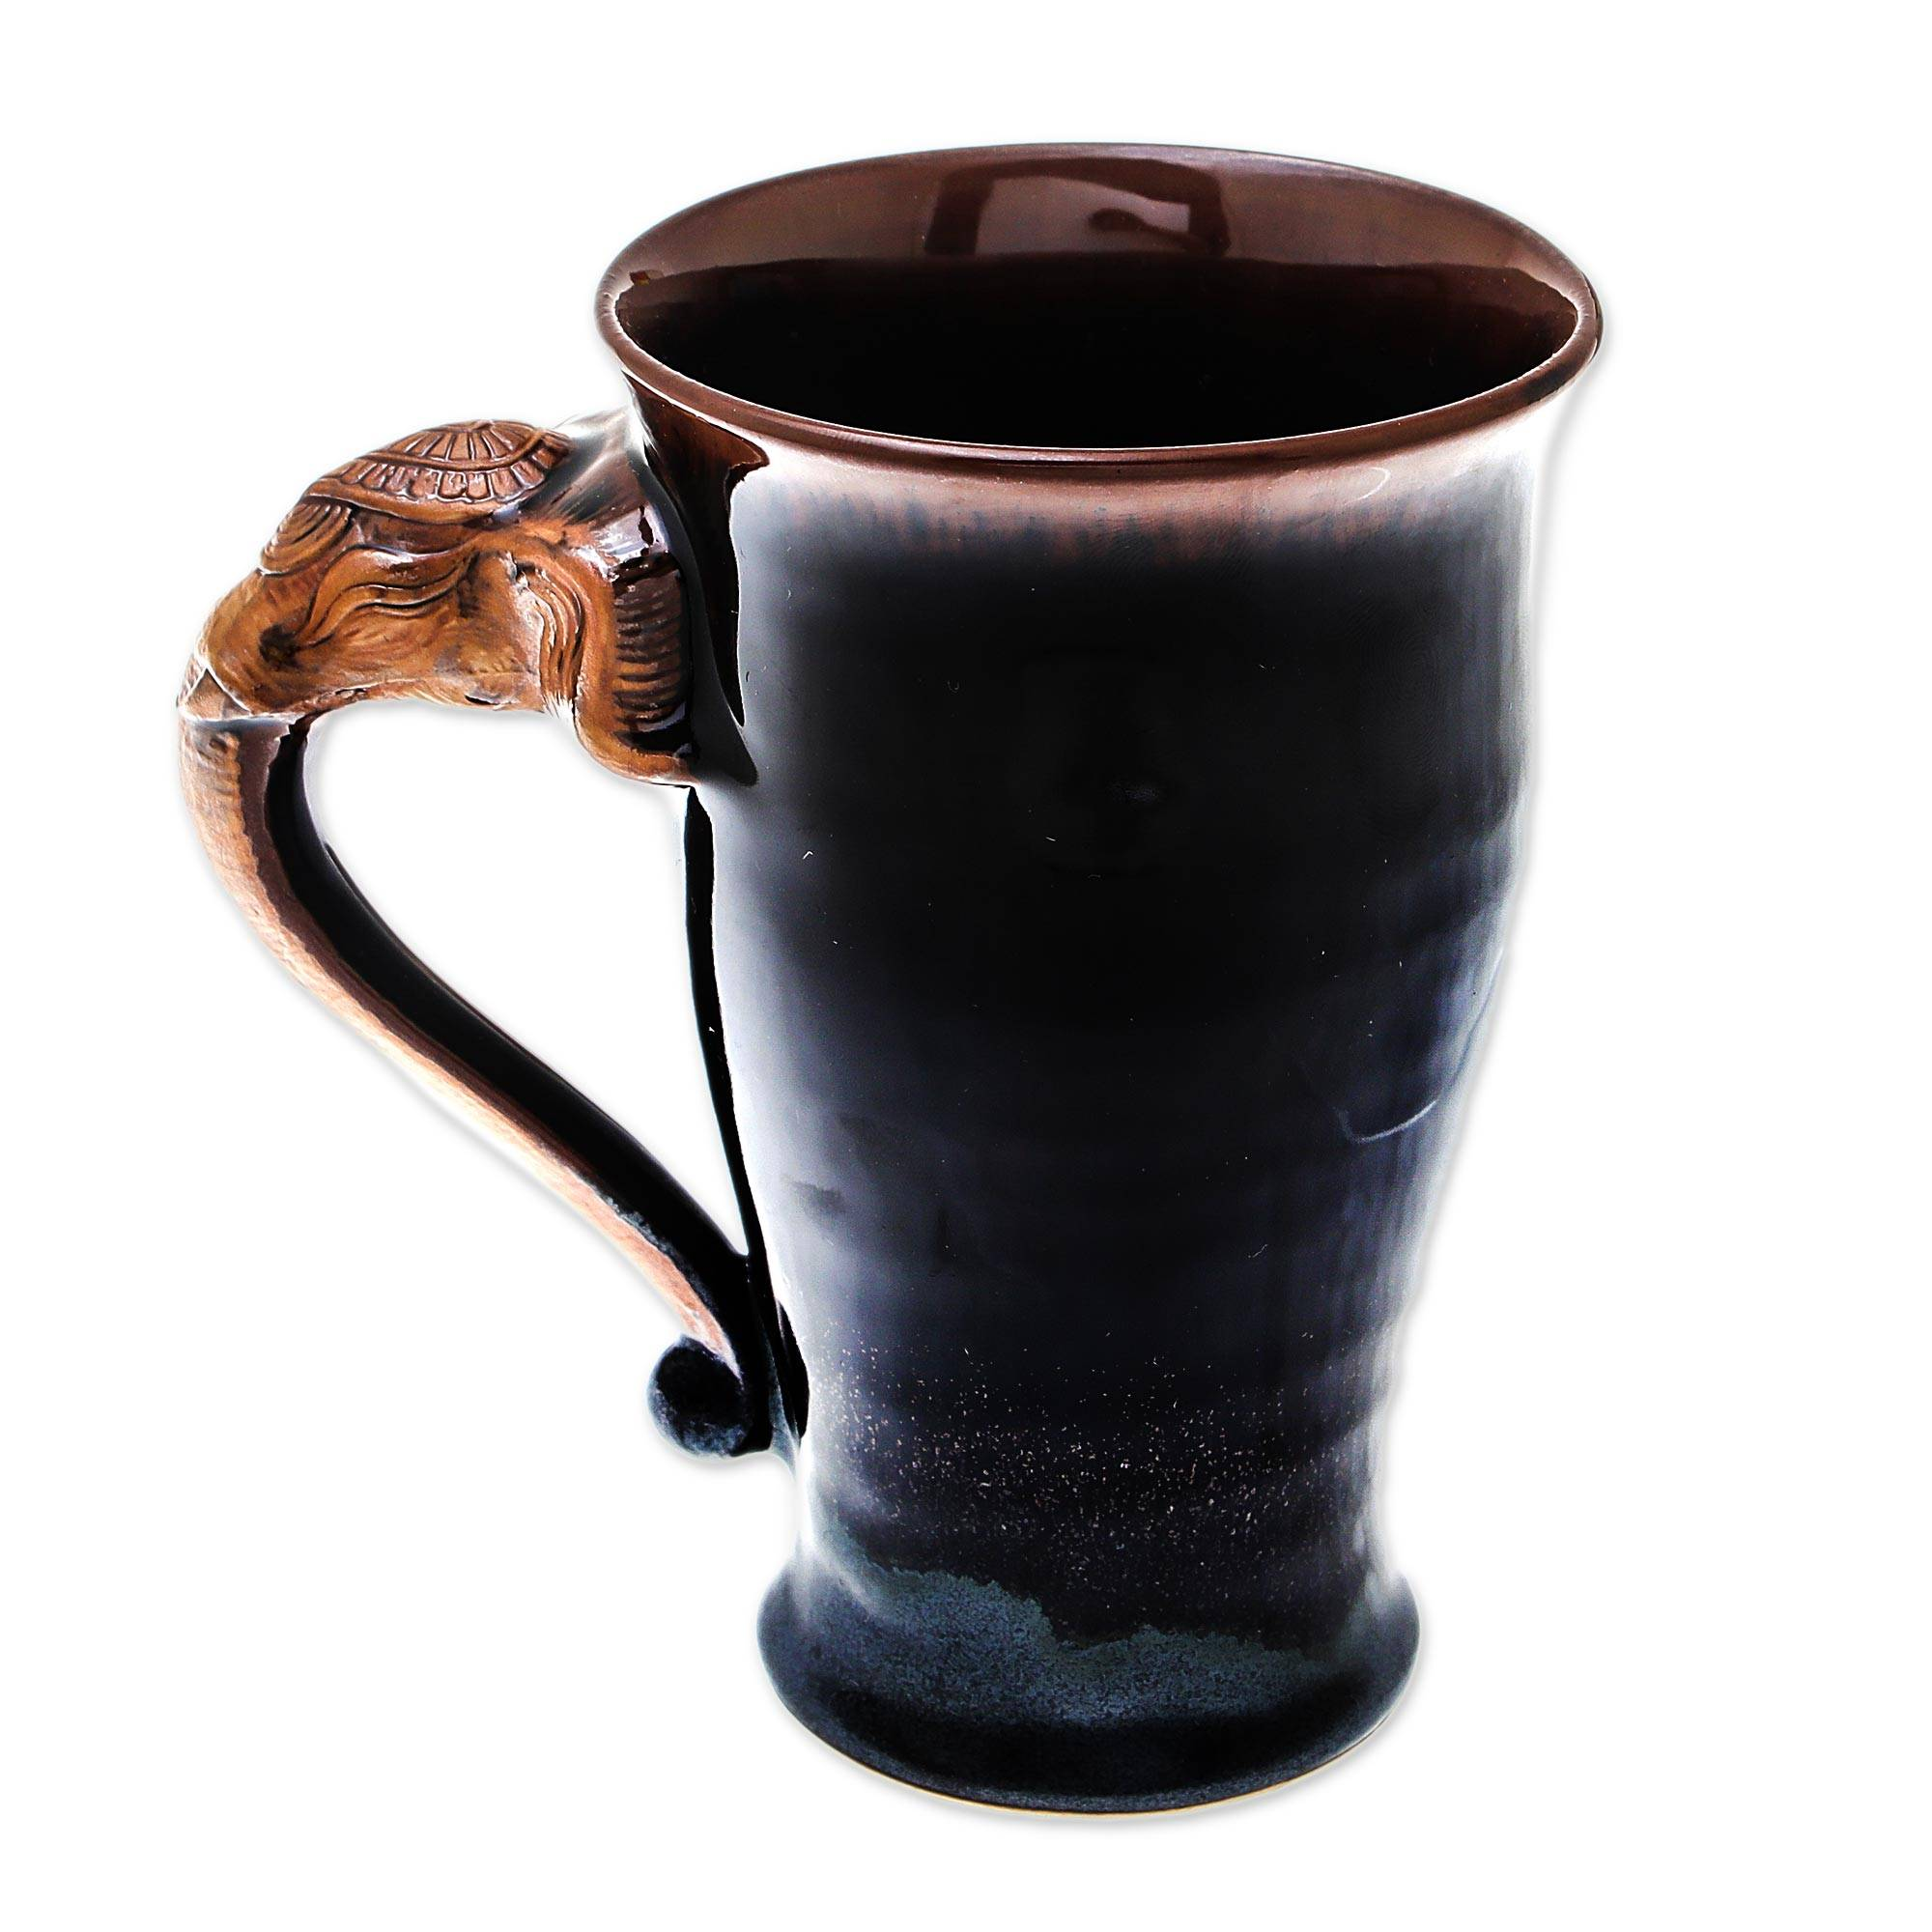 Elephant-Themed Ceramic Mug in Brown from Thailand, 'Elephant Handle in  Brown'